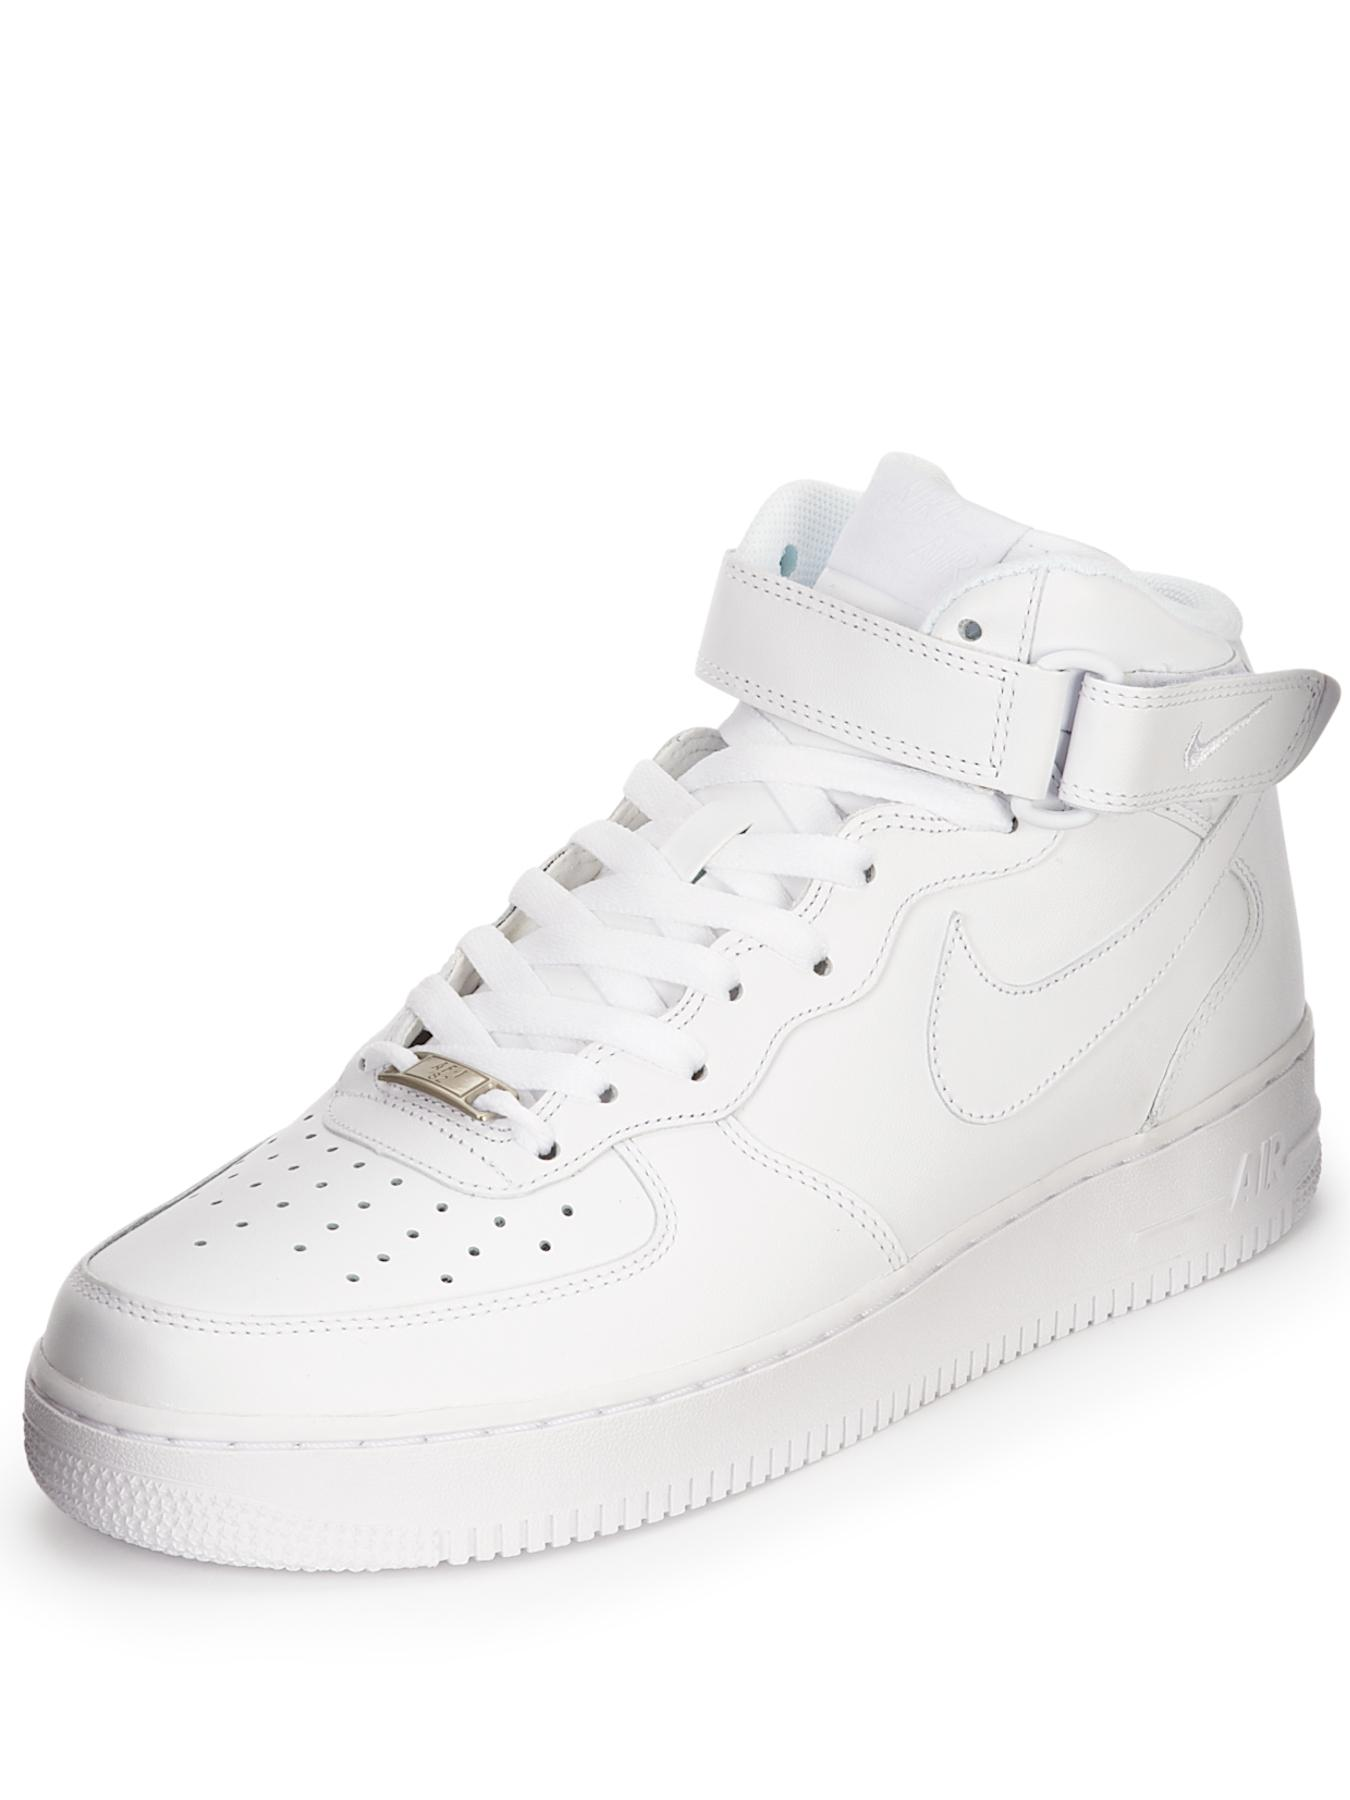 Air Force 1 Mid Trainers - White, White